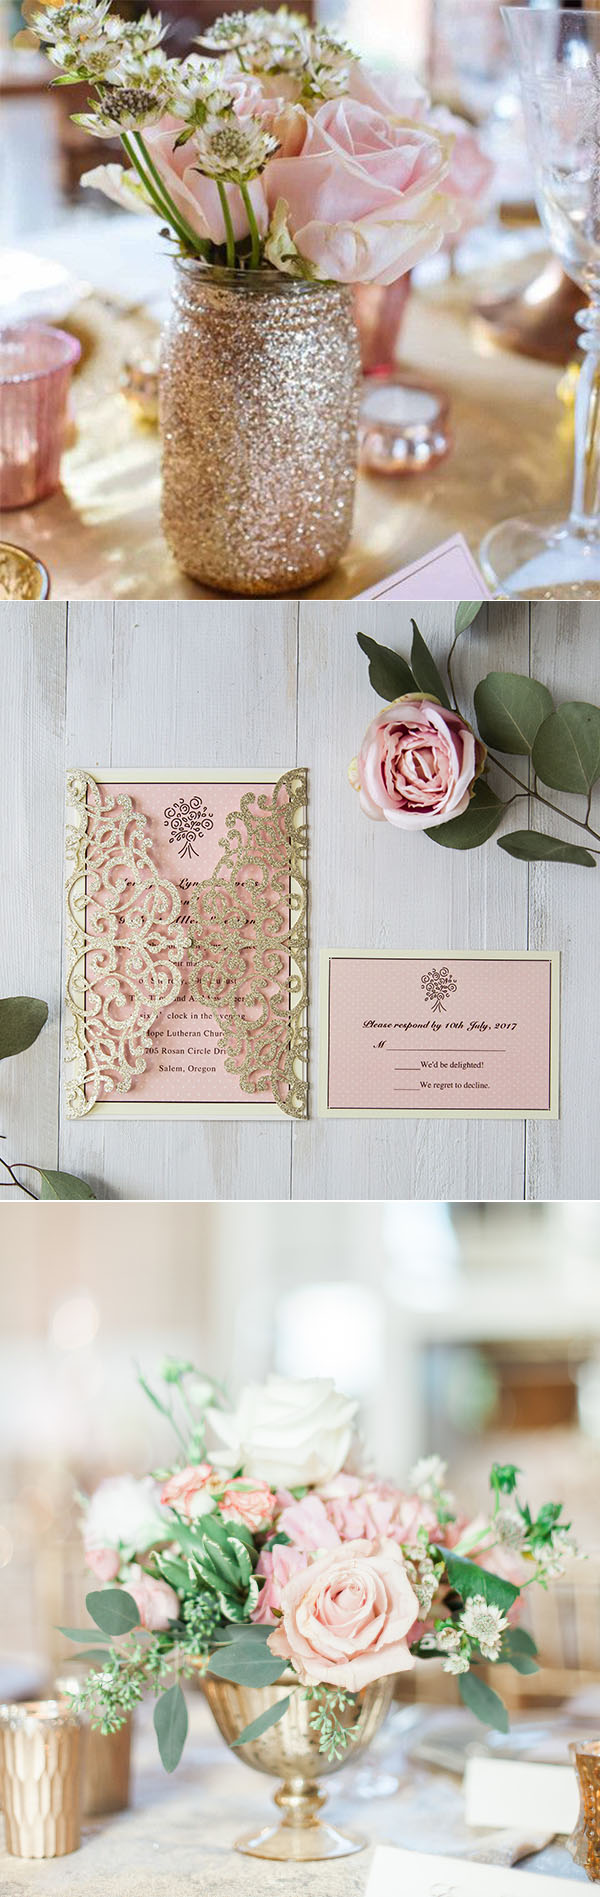 Stunning Pink Wedding Ideas and Invitations With Gold & Silver ...